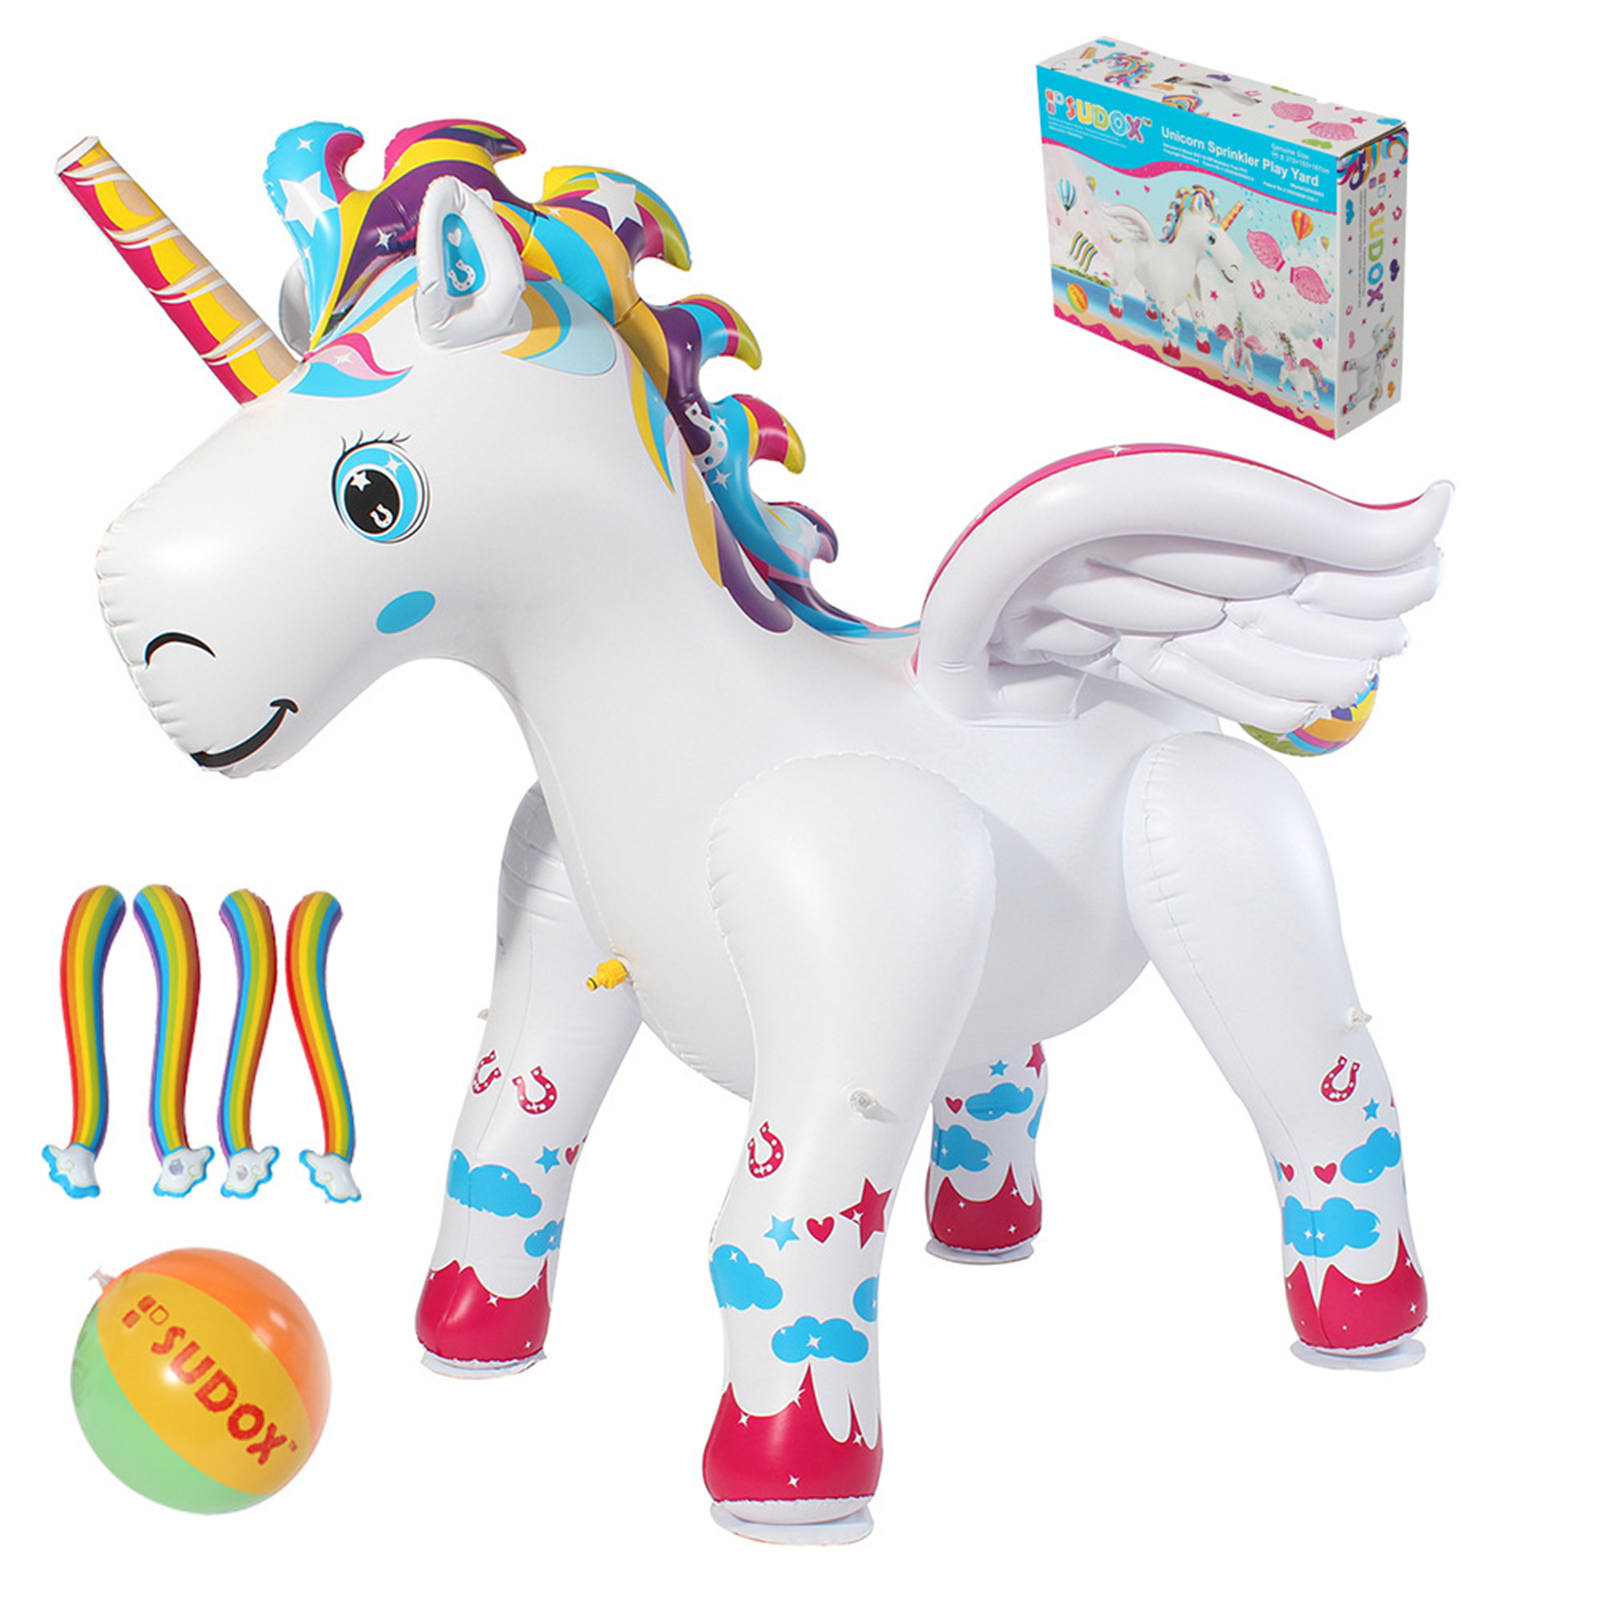 Unicorn Sprinkler Durable Inflatable Water Spray Toy Summer PVC Sprinkle Water Park Durable Inflatable Outdoor Fairy Tale Toys